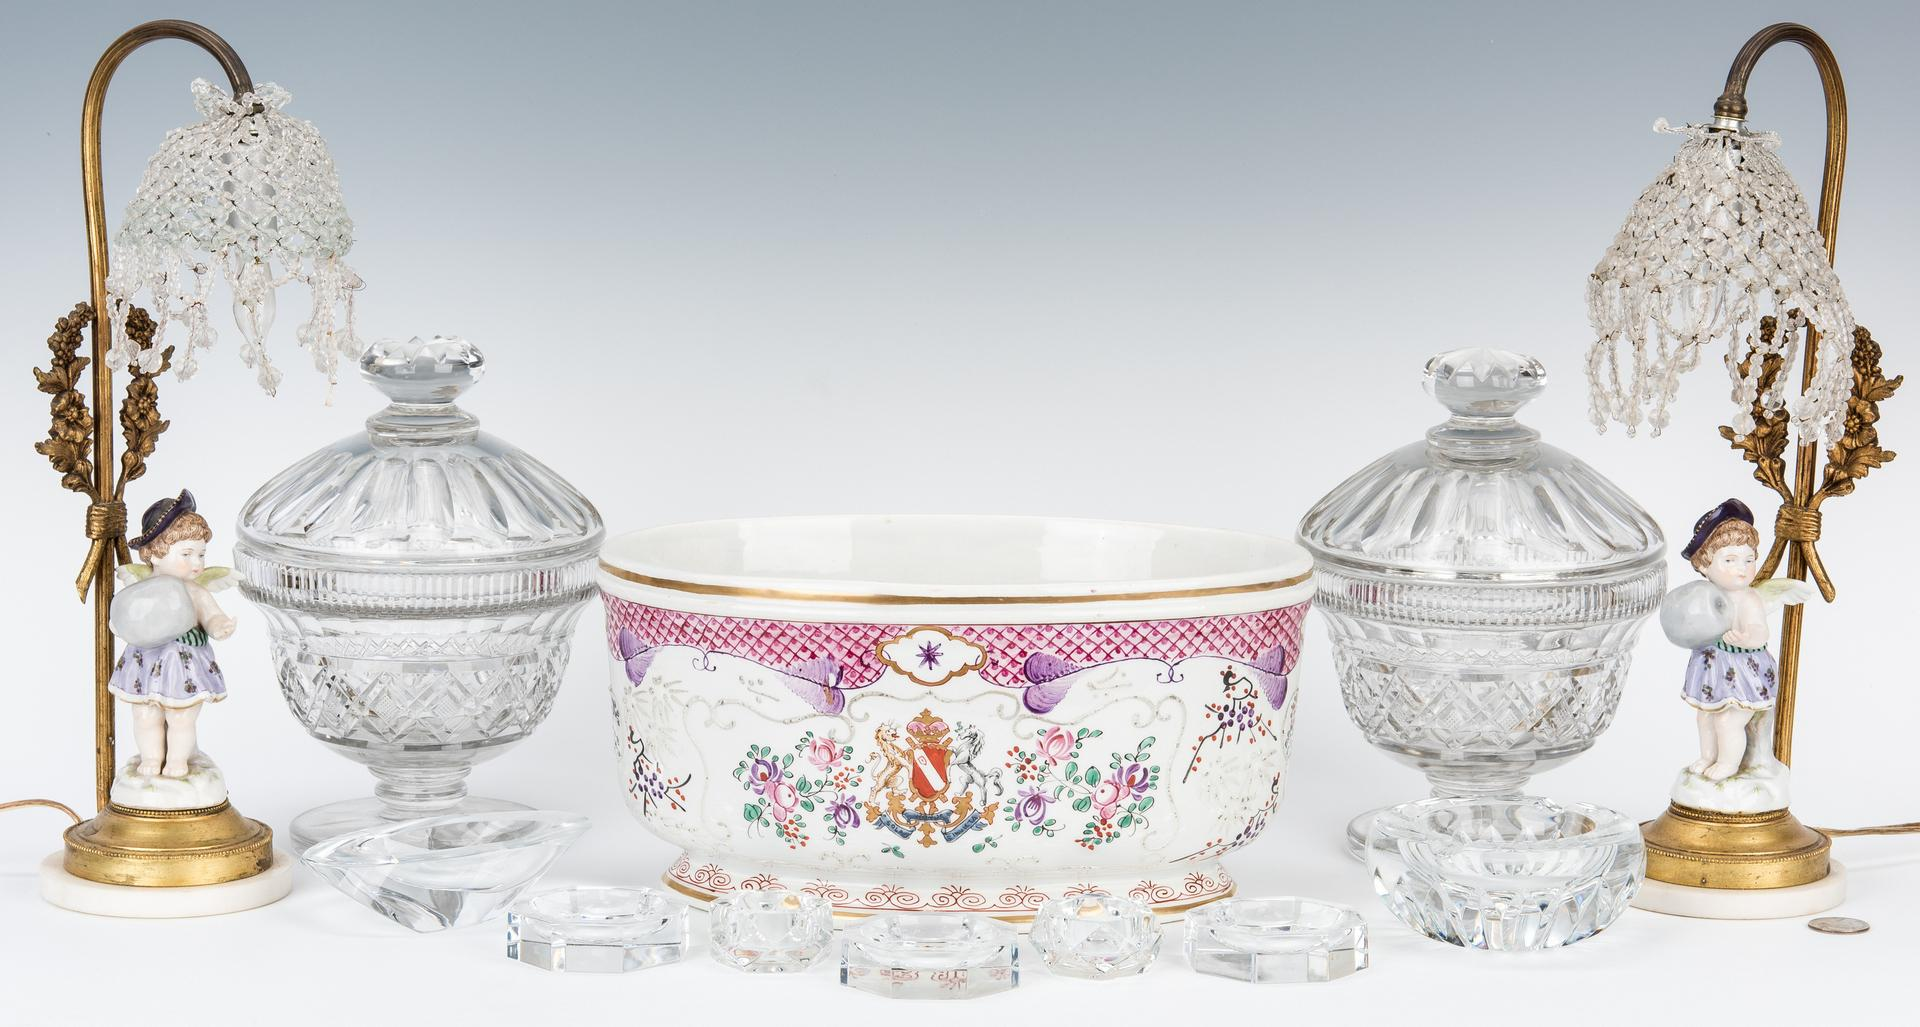 Group 5 Decorative Table Items & Baccarat Crystal